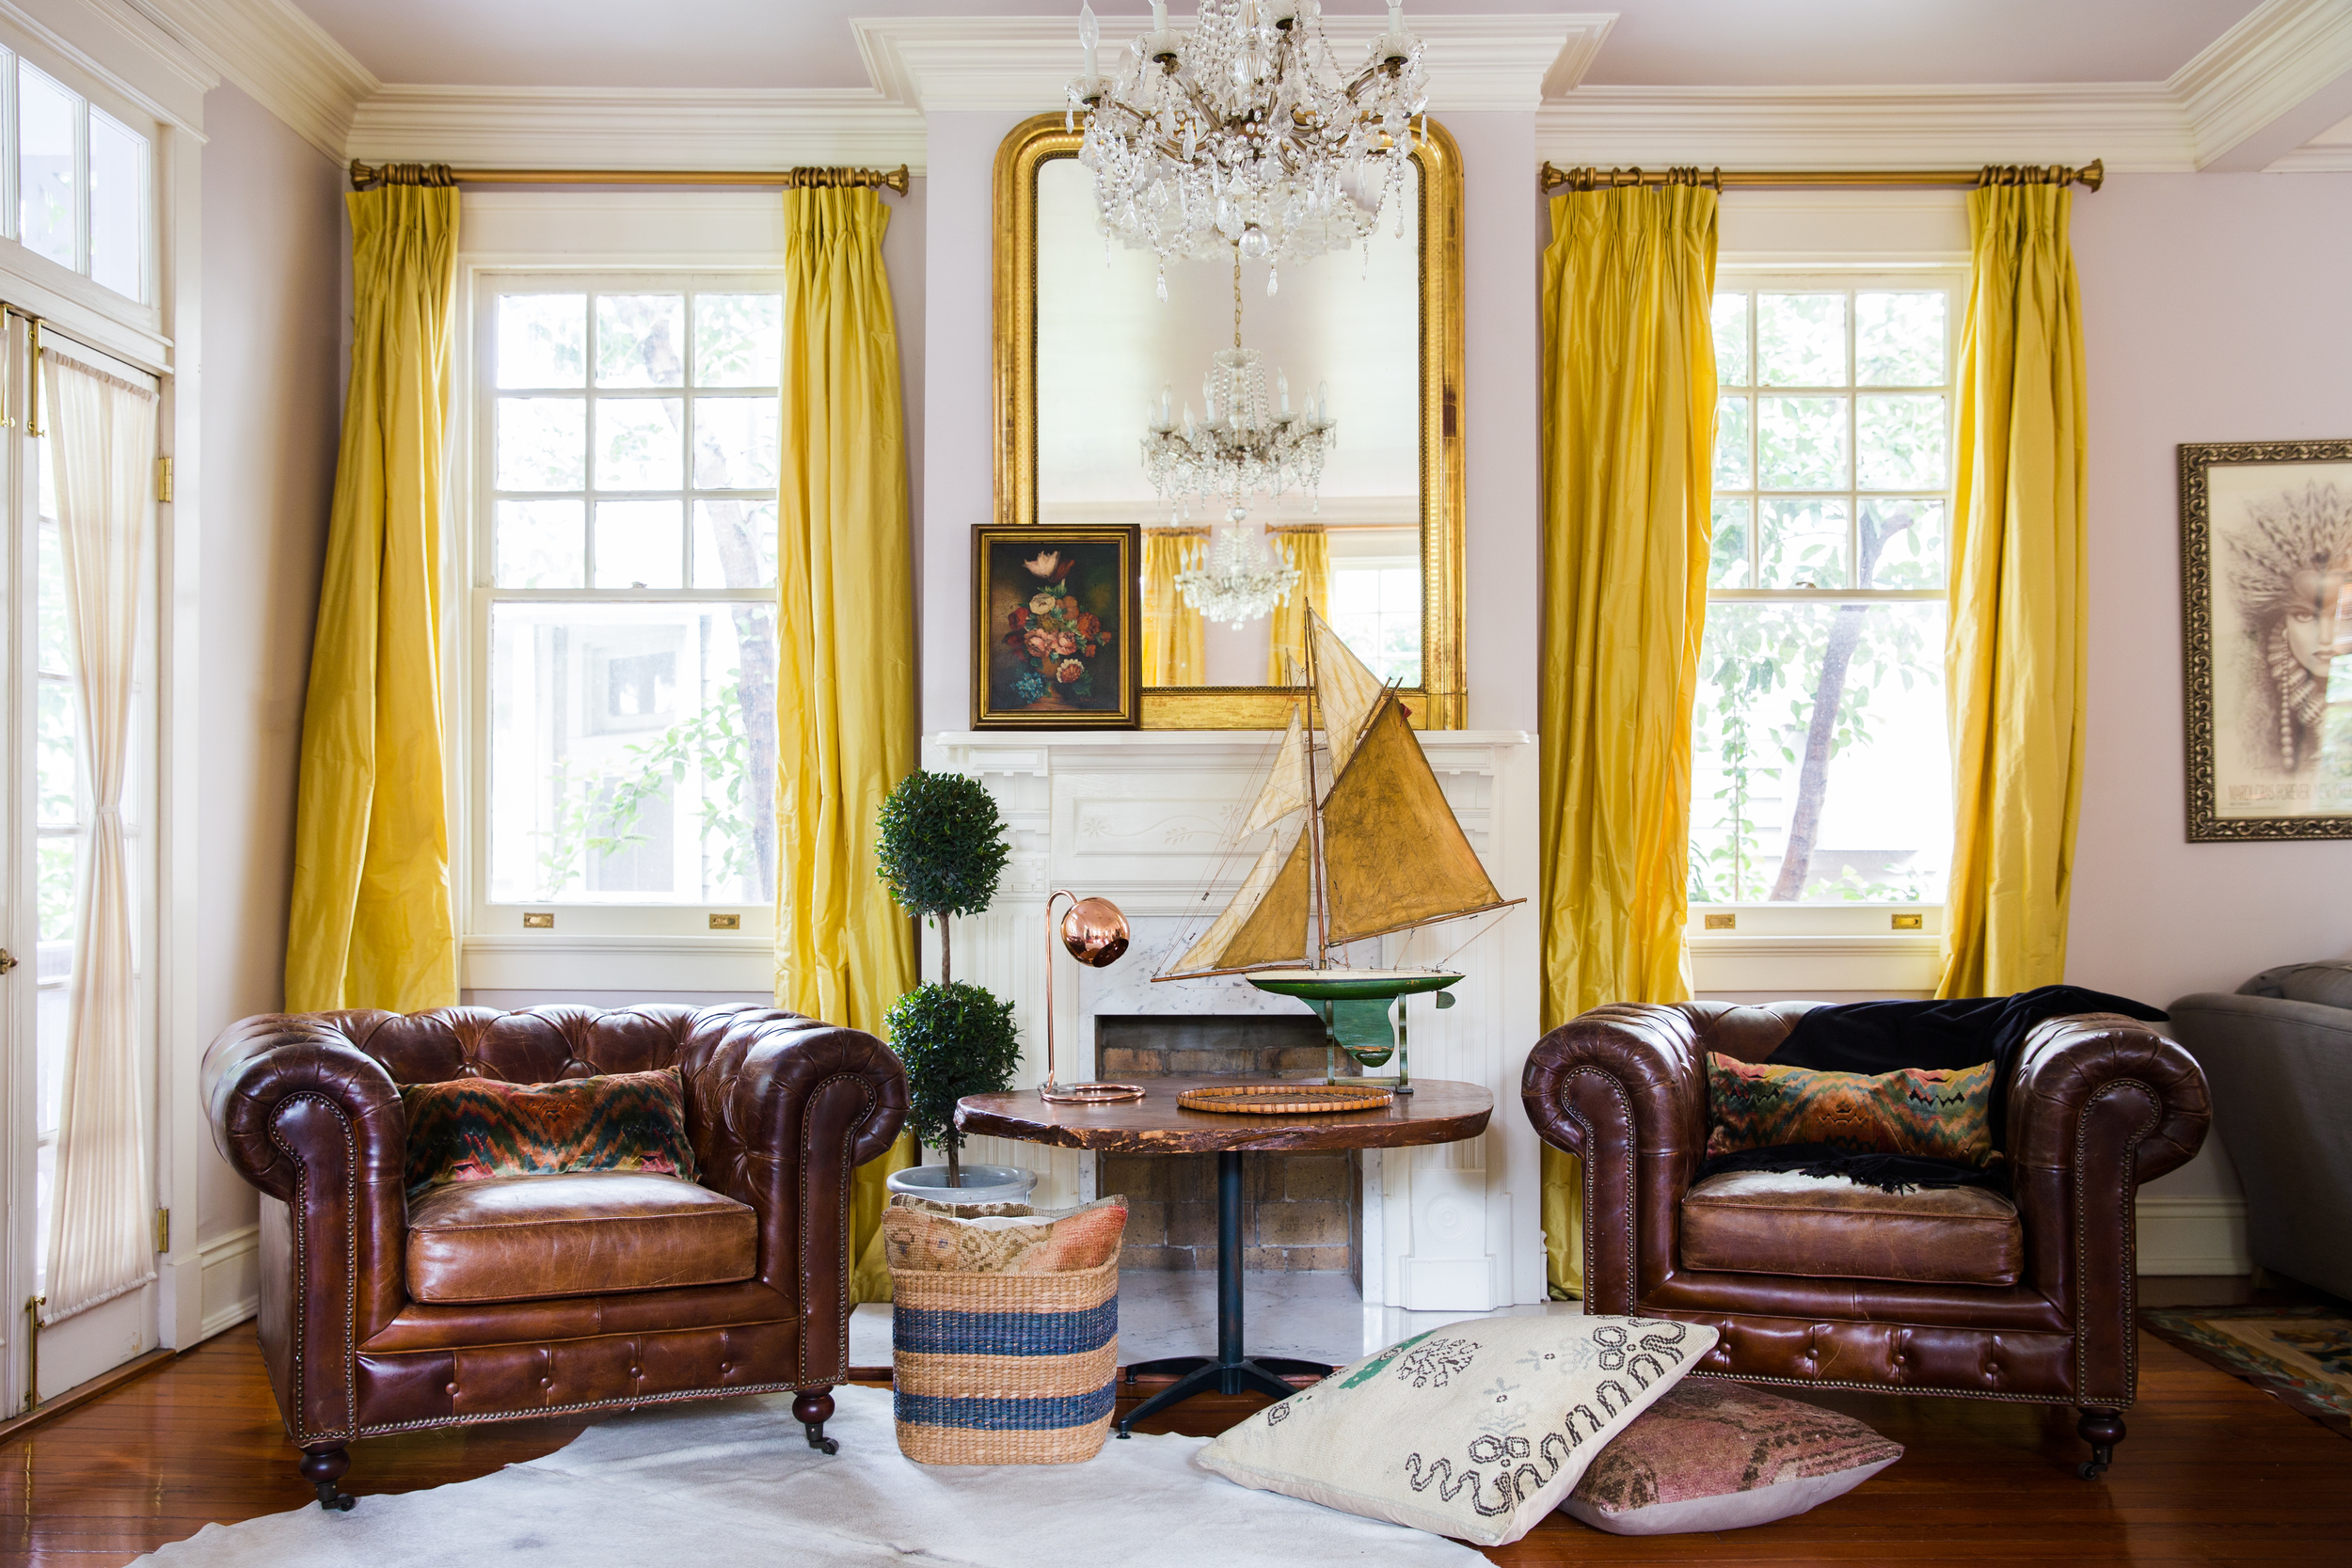 Logan Killen Interiors